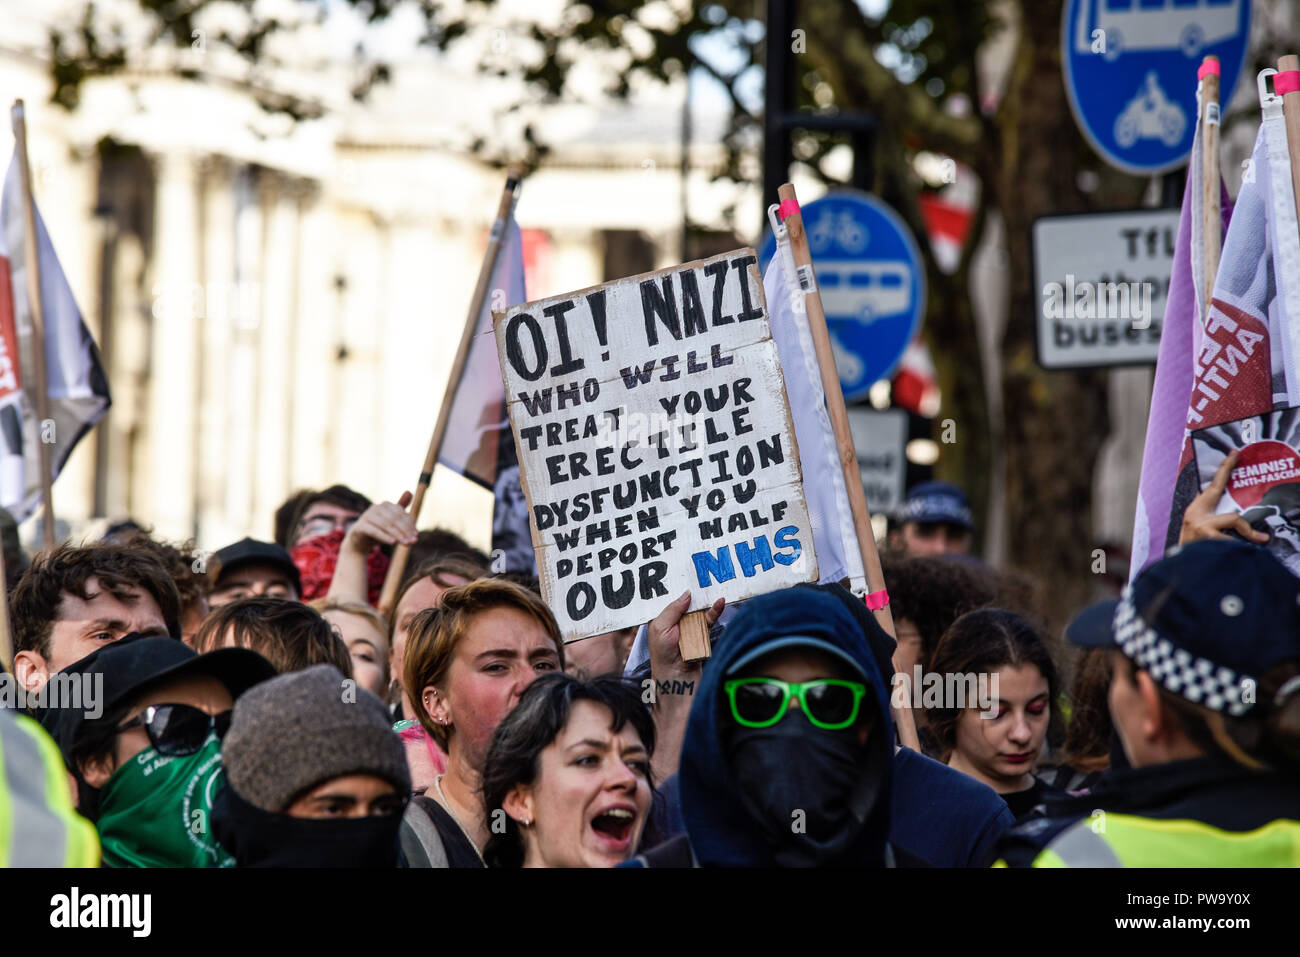 antifa-anti-fascist-action-and-other-opposition-to-democratic-football-lads-alliance-block-road-for-the-dfla-protest-march-humorous-placard-brexit-PW9Y0X.jpg